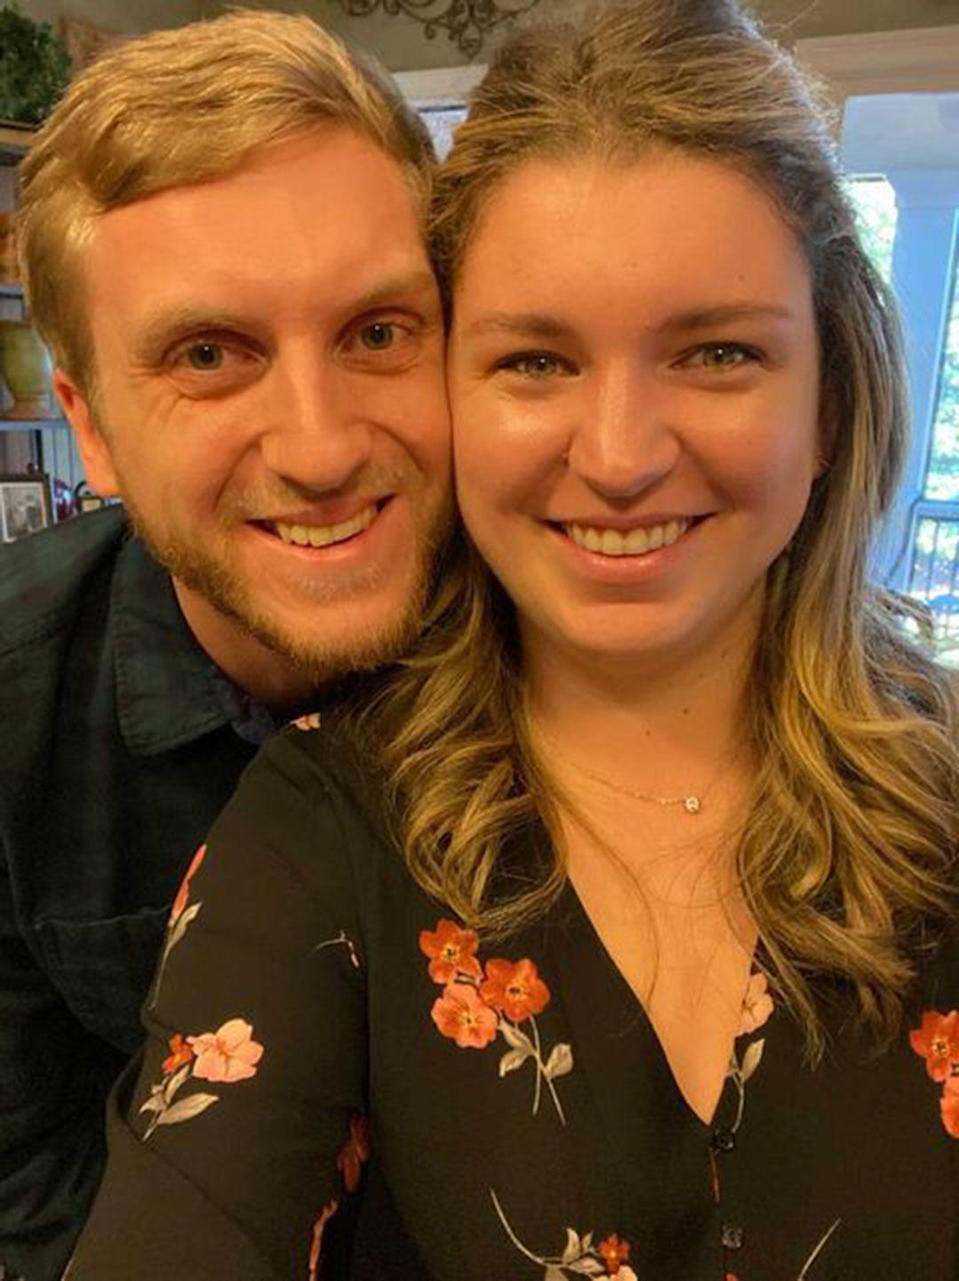 "<p><strong>Names:</strong> Sarah & James </p> <p><strong>Ages: </strong>28 & 29<br> <strong>Location:</strong> Atlanta<br> <strong>Submitted By: </strong>Sarah</p> <p> <br> In September, at much pressing from a girlfriend on a Zoom hang, I re-entered the online dating world with Bumble. It was the same old same old B.S. messages and conversations for the first 24 hours. Then I matched with James, with cute pictures and an interesting bio: ""How do you sustain a relationship? Communication, honesty and great sex."" I was sold! <br>  <br> There were some new things to adjust to in the world of virtual dating in COVID. We had to make an agreement together that while we were not exclusive — because that would be crazy before date No. 1 — we weren't going to pursue anyone else until we proved/disproved that we would be a good match.<br> <br> First date was virtual and went well. Our first in-person date went even better: seven hours together. Our second in-person date was at my house. Because, what are you gonna do in the height of COVID? Ten hours of talking and cooking in the privacy of your home is an ""intimacy level"" I didn't expect on date No. 2 and it set the tone for our relationship. <br> <br> Five months later, We've been together since Sept. 11. We've been sure we were each other's forever partner since Oct. 3. I've never looked at someone before and gone ""that's my husband"" until him. The butterflies are inexplicable.<br> <br> We've laughed, we've cried, we've commiserated on COVID, we've been stuck inside together, we've puzzled, we've watched seemingly everything on Netflix, and we've grown together in this period of isolation. Love is wonderfully hard and beautifully frustrating — but growing in the same space as another person is comforting. I literally don't know where I would be without him if we hadn't met. I'm forever grateful. </p>"